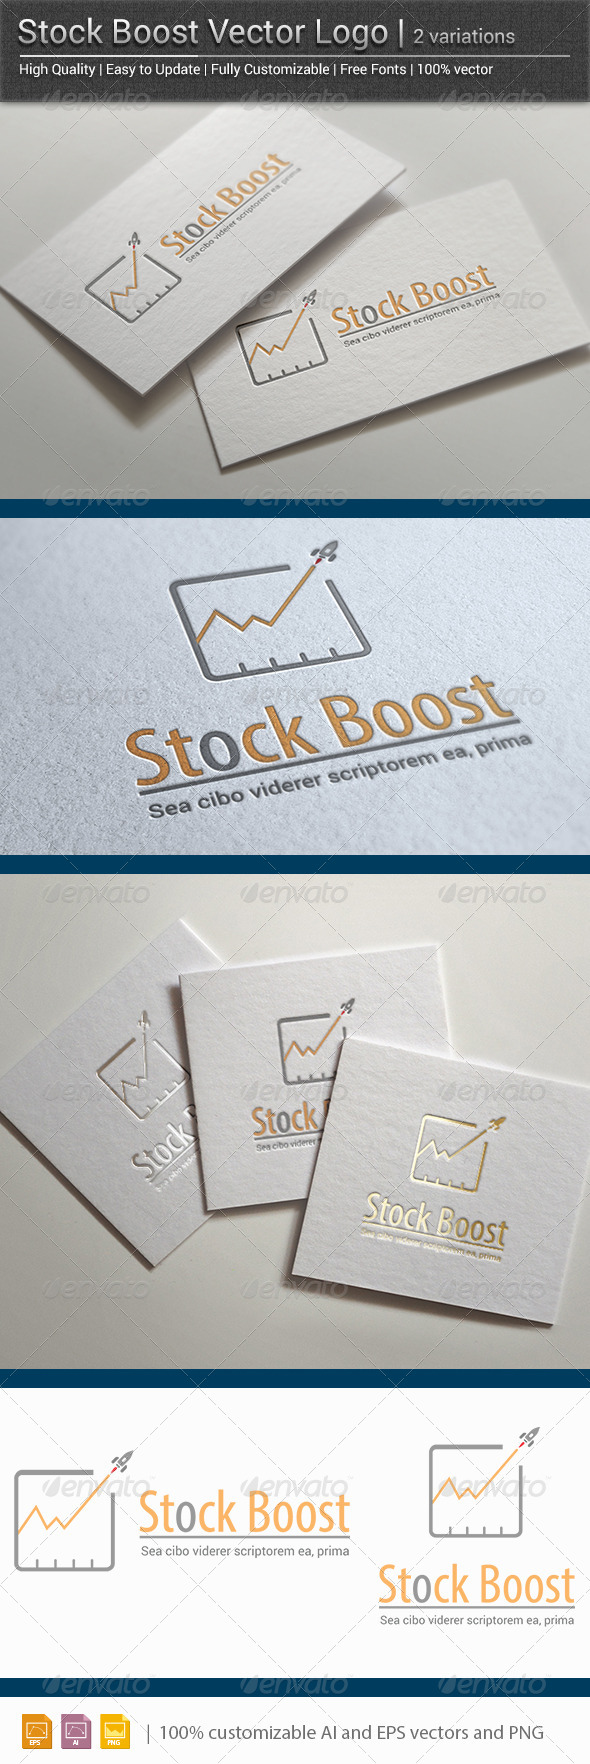 Stock Boost Vector Logo  - Vector Abstract